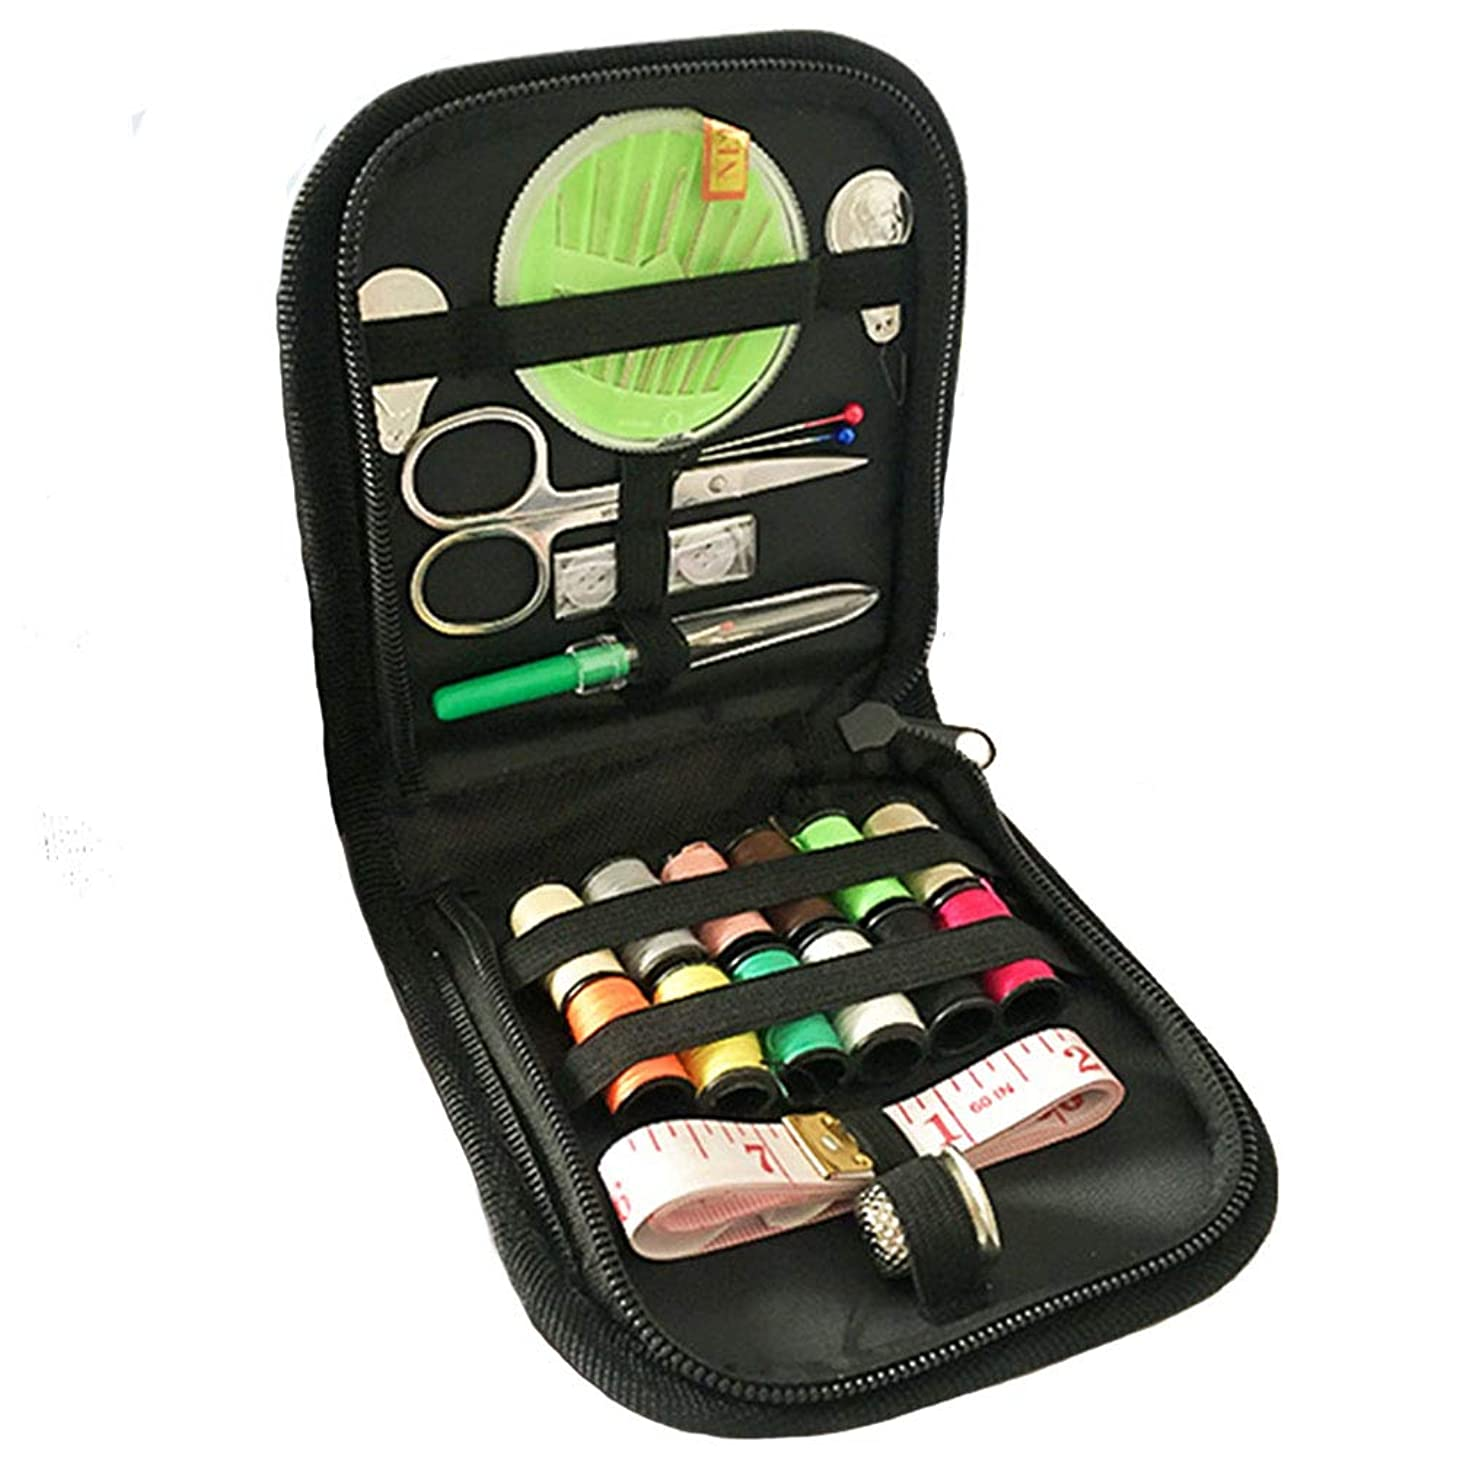 Auony Travel Sewing Kit, 45 DIY Premium Sewing Supplies Organizer Include Thread, Sewing Needles, Scissors, Thimble & Tape Measure for for Home, Travel & Emergencies